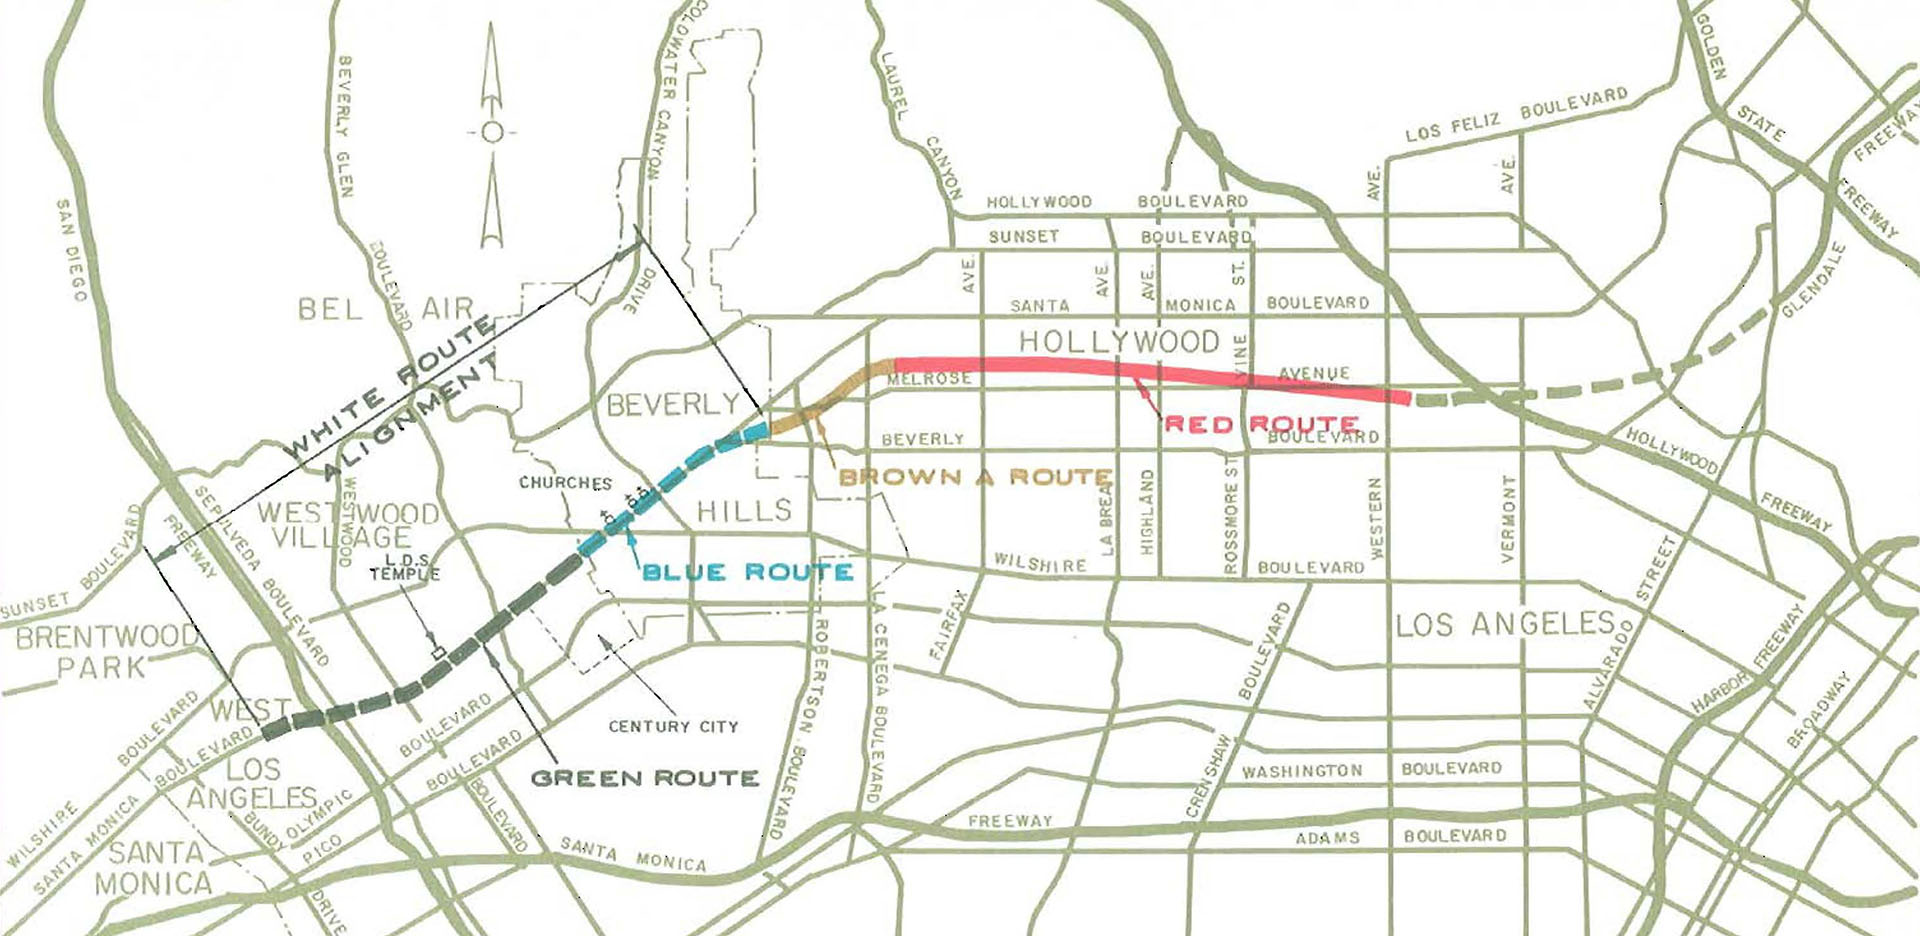 Beverly Hills Freeway route